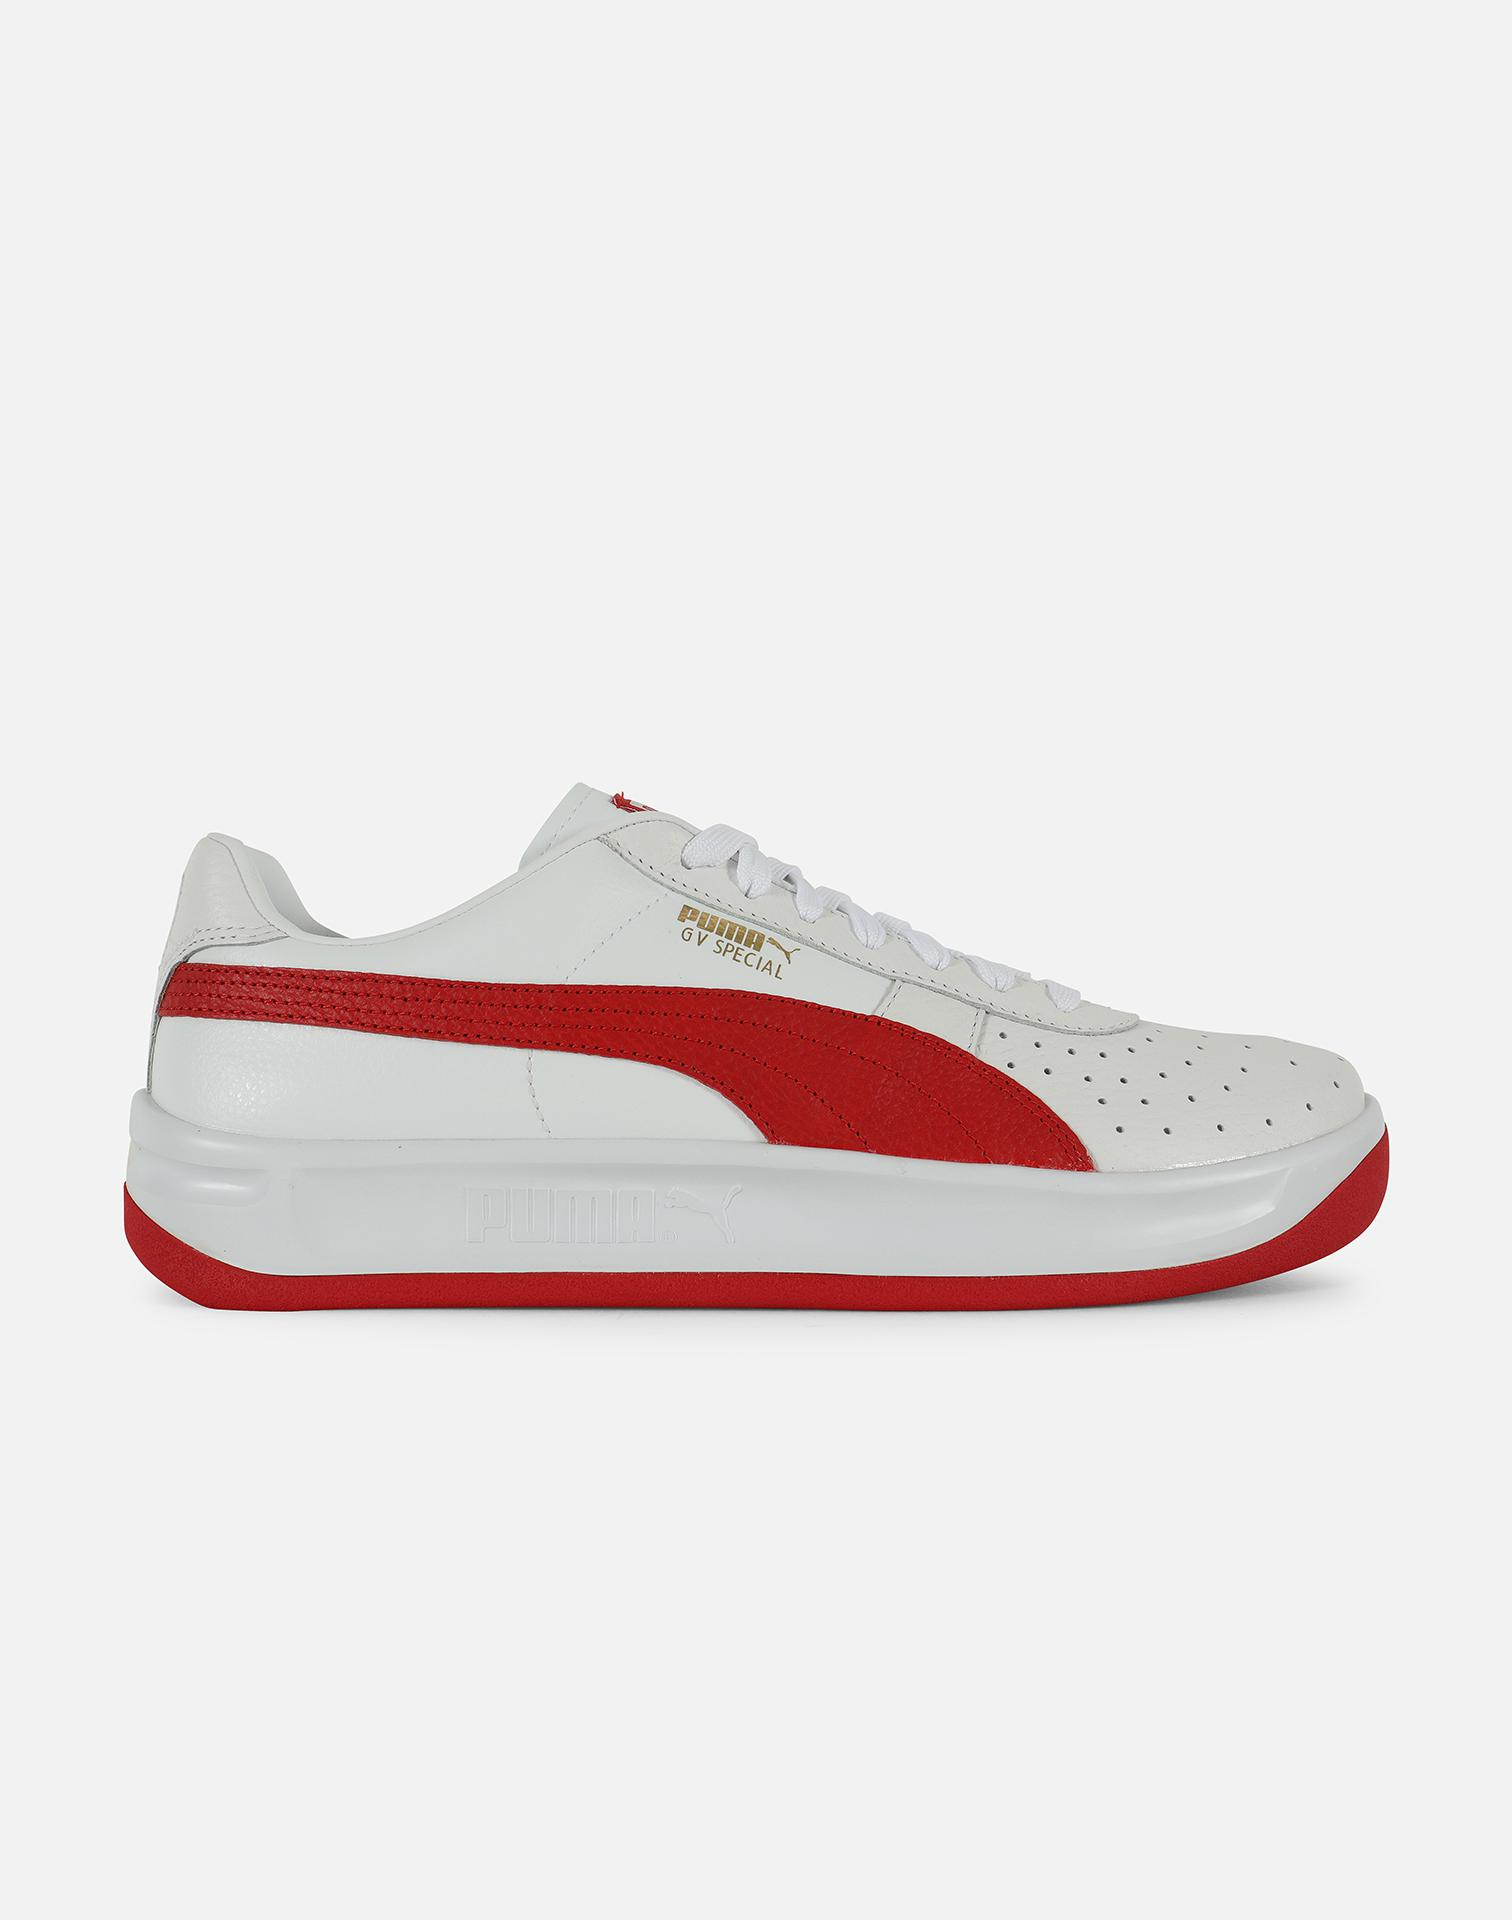 47a059482b3 Lyst - Puma Gv Special+ in White for Men